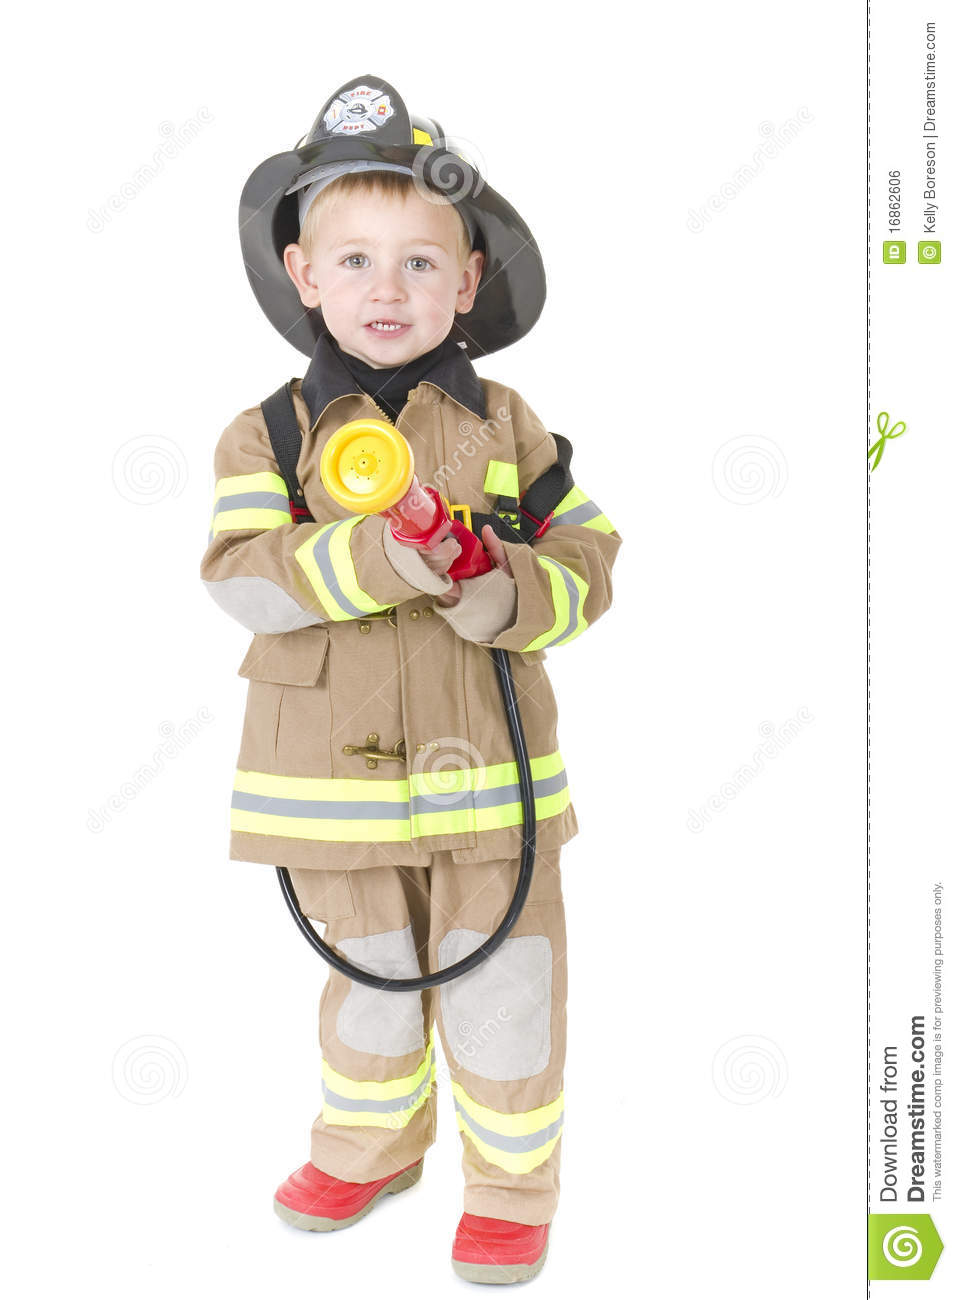 Cute Little Boy In Fireman S Outfit Stock Photo Image